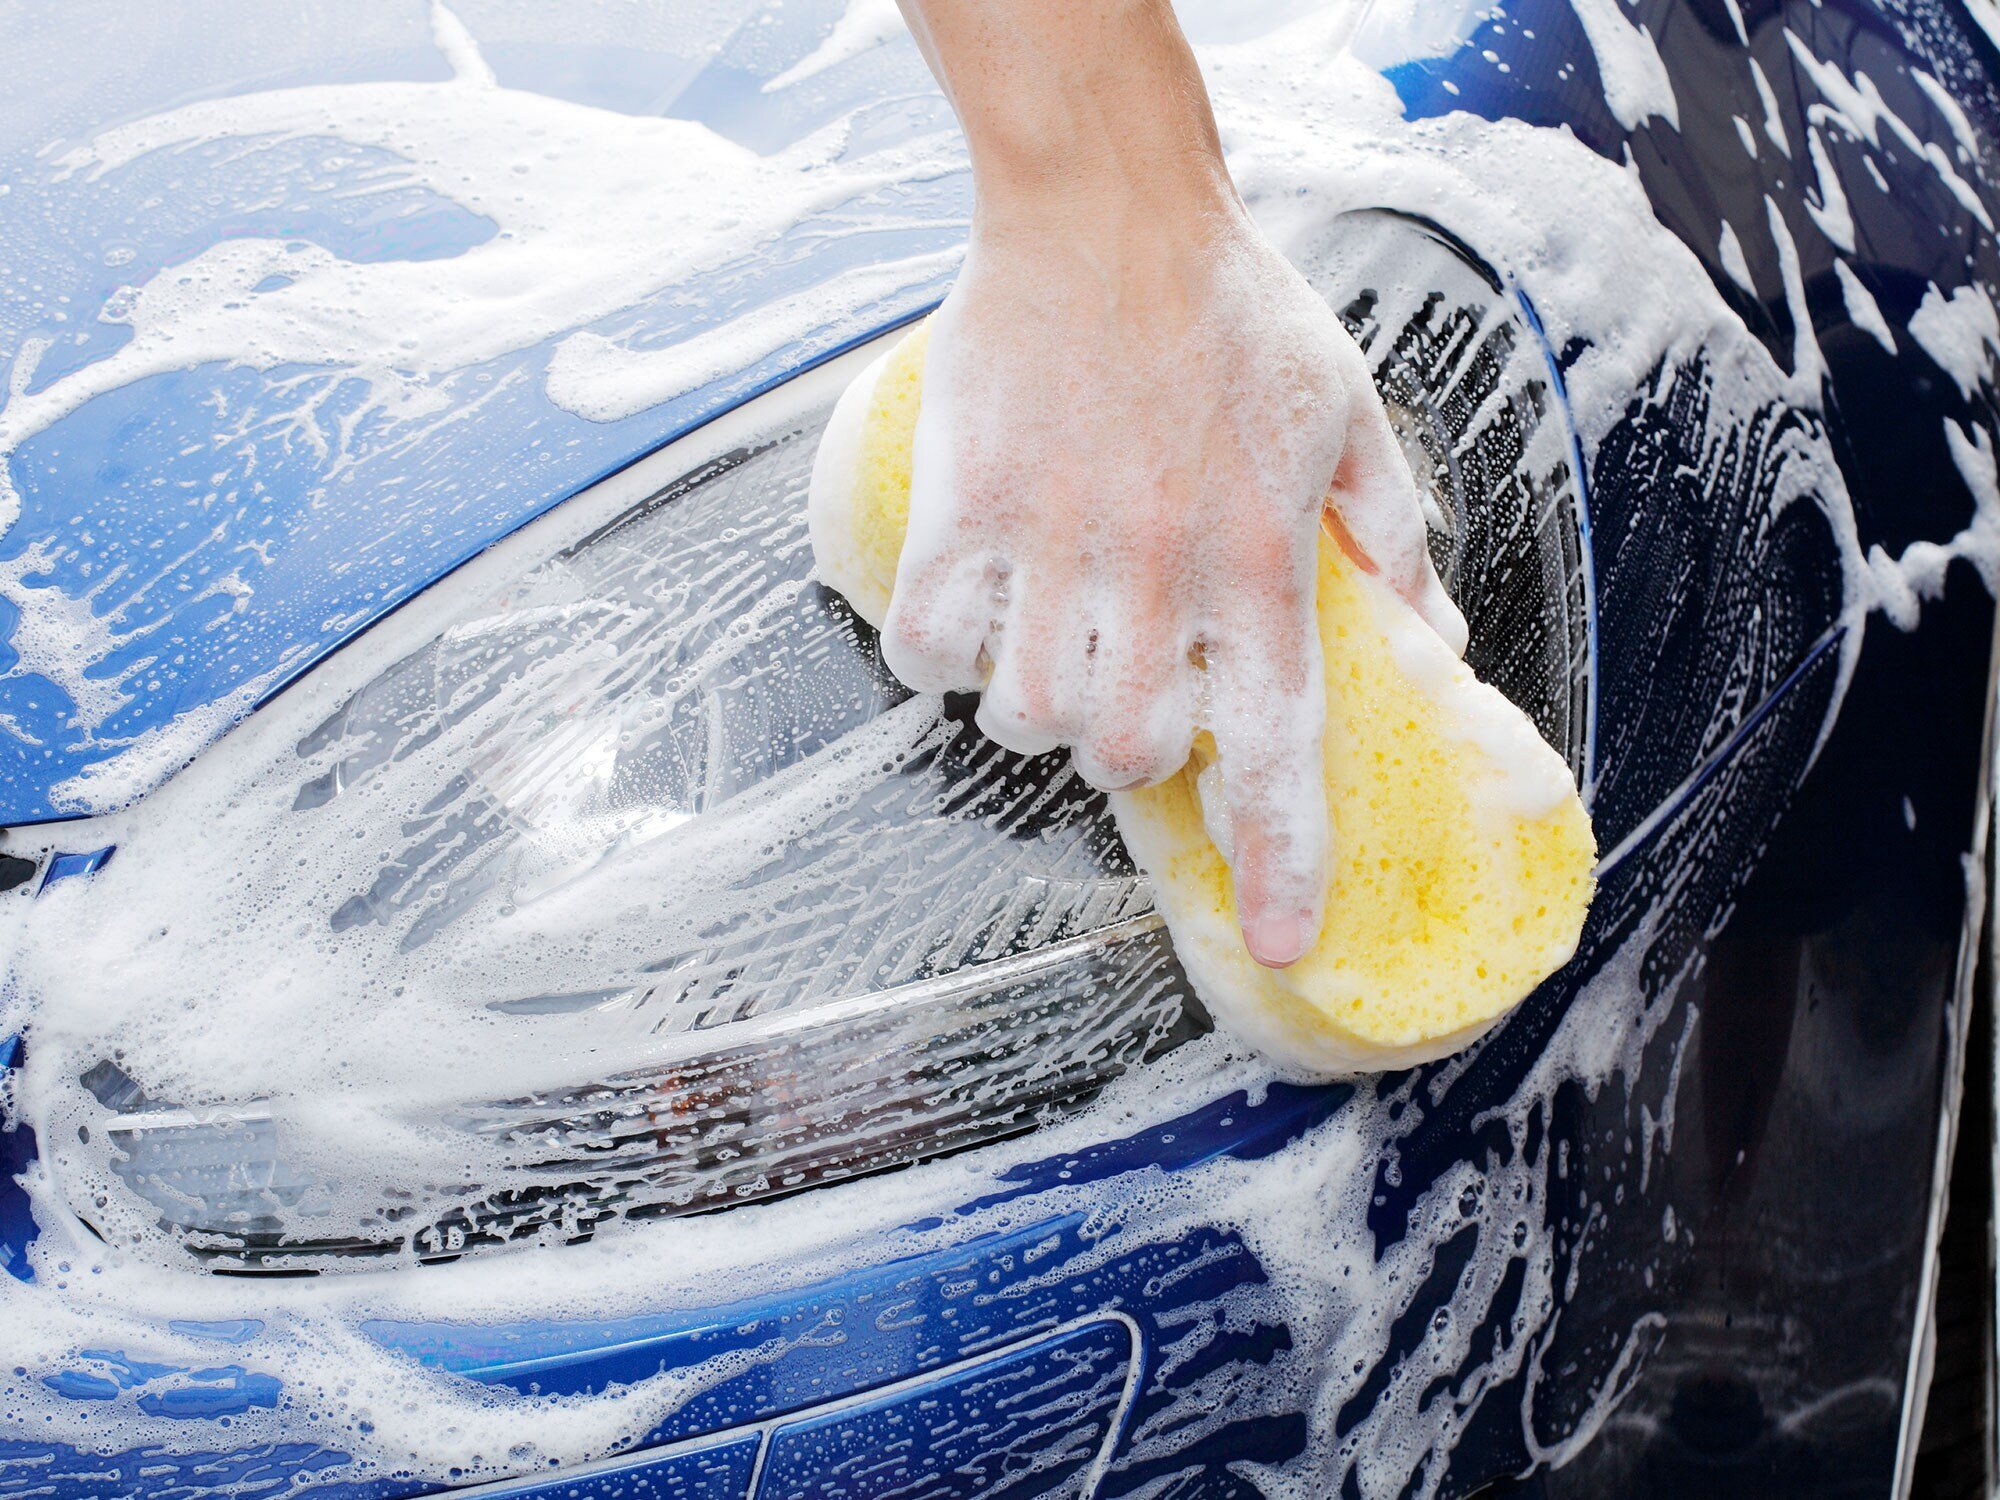 Coupon for Complete Vehicle Detail Dirty car? Get your vehicle sparkling like new